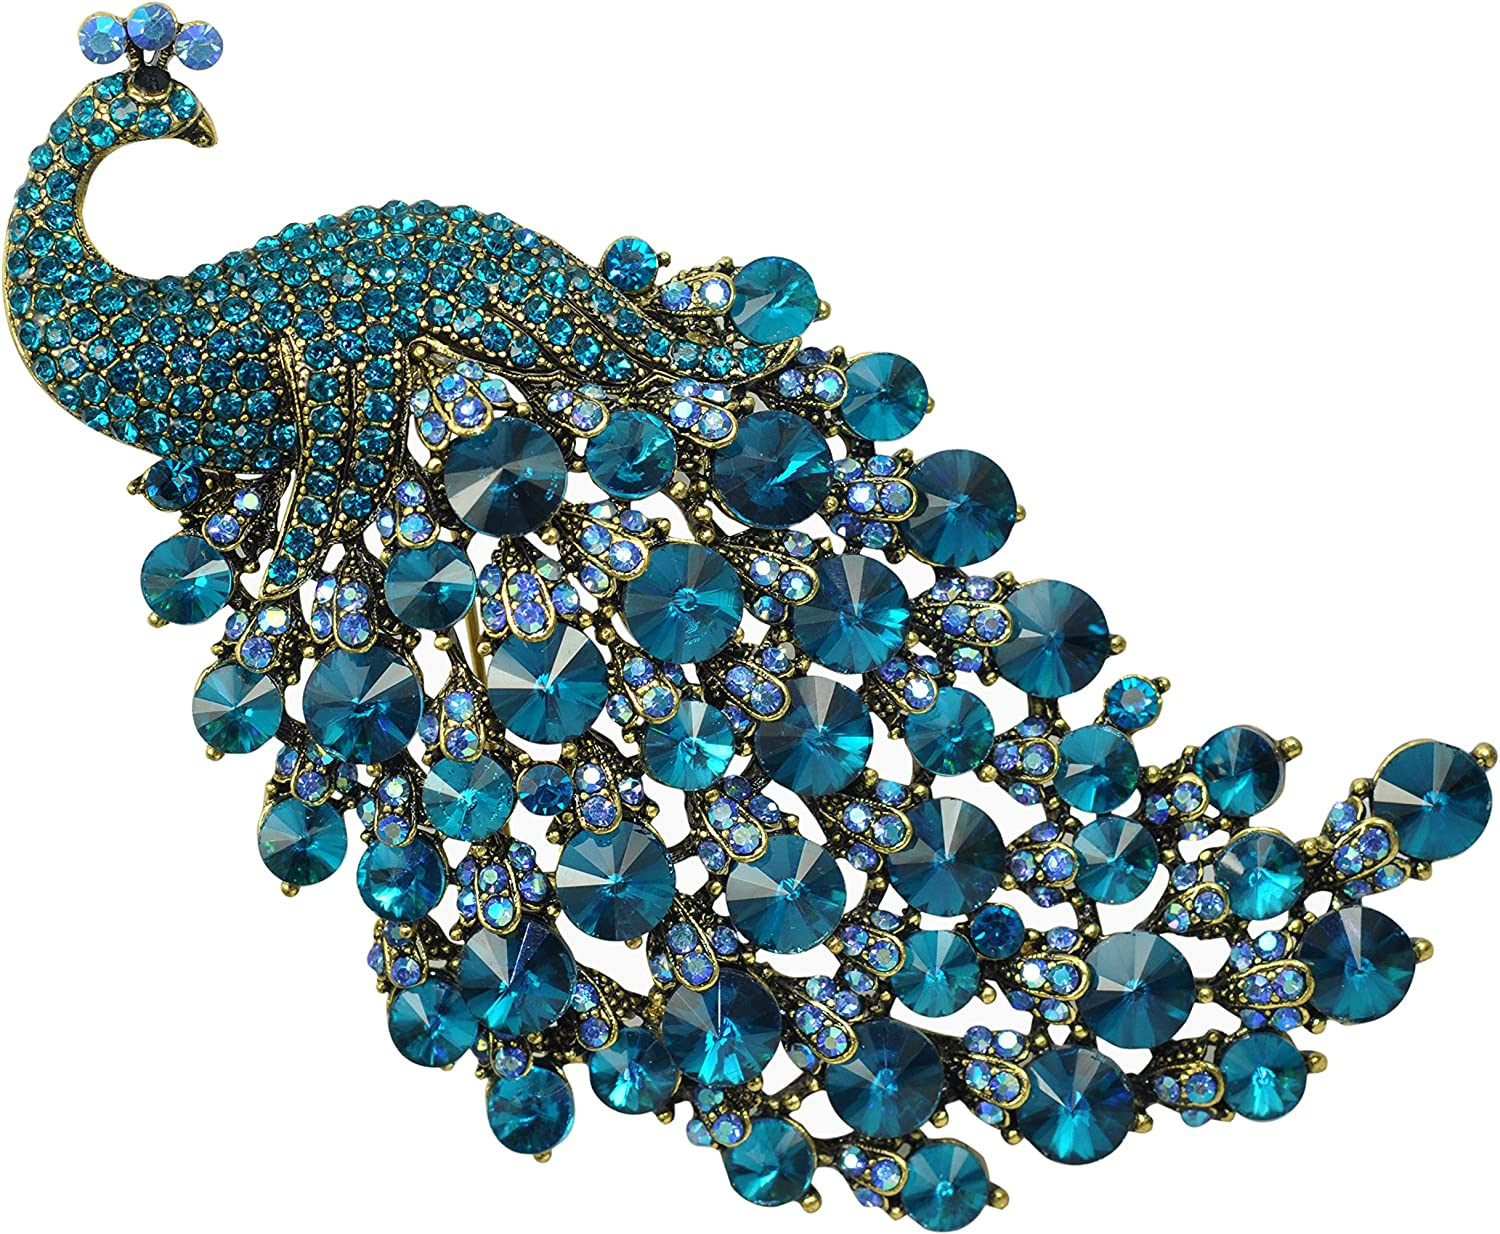 LARGE Turquoise And Blue Diamante Crystal Rhinestones PEACOCK Brooch Pin Gift